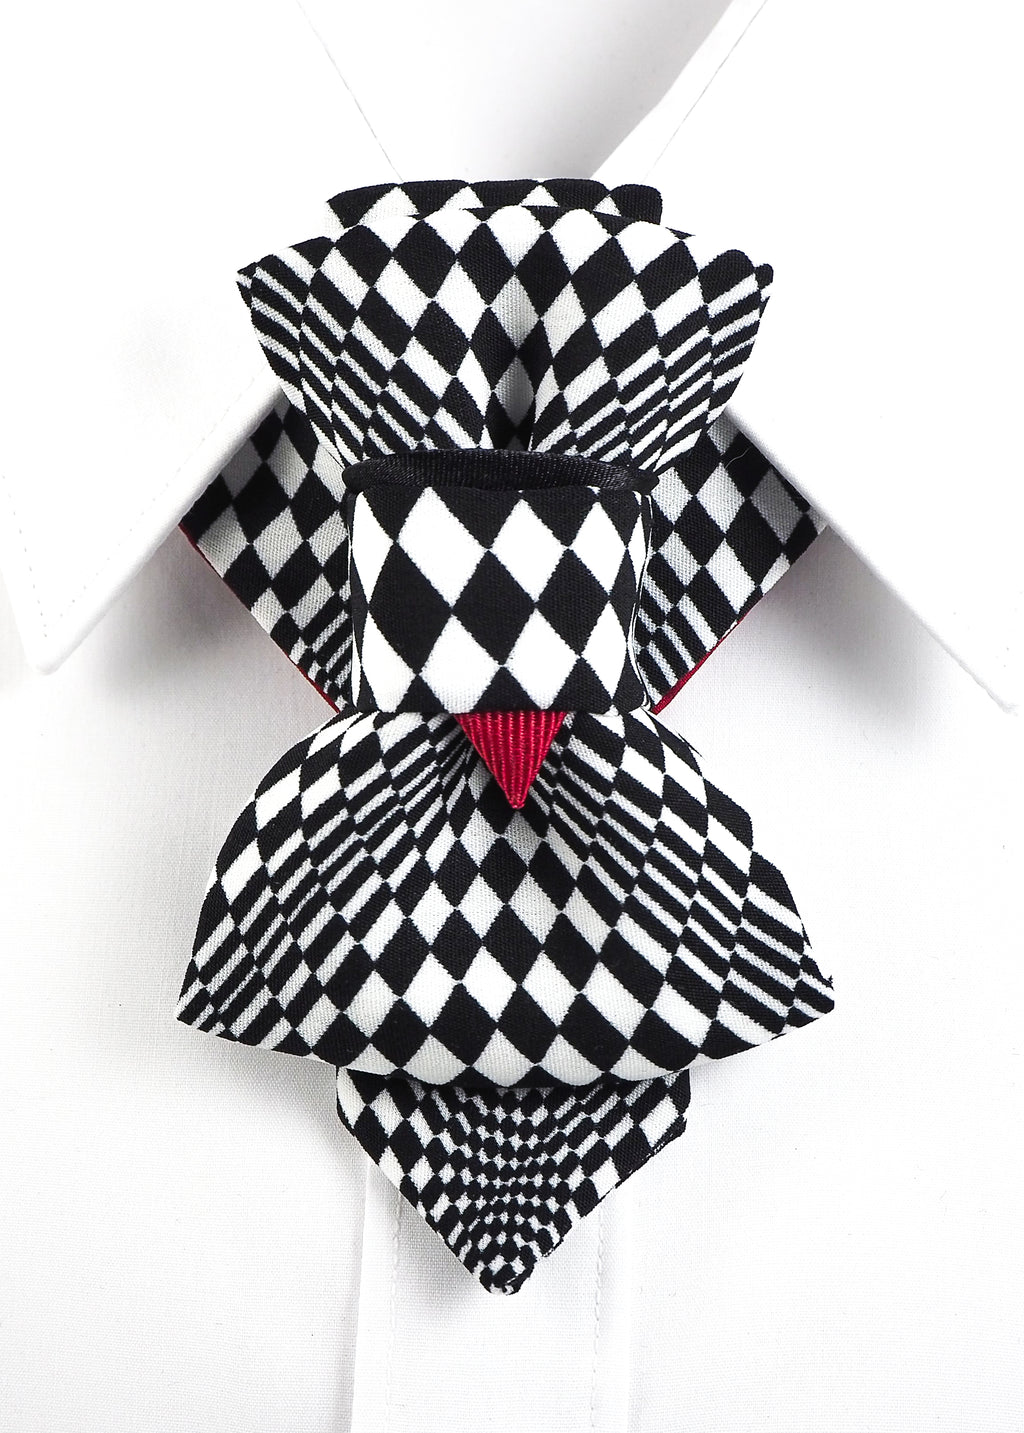 Ruty design, unique bow tie for men, hopper bow tie, vertical bow tie, necktie, wedding suit accessories